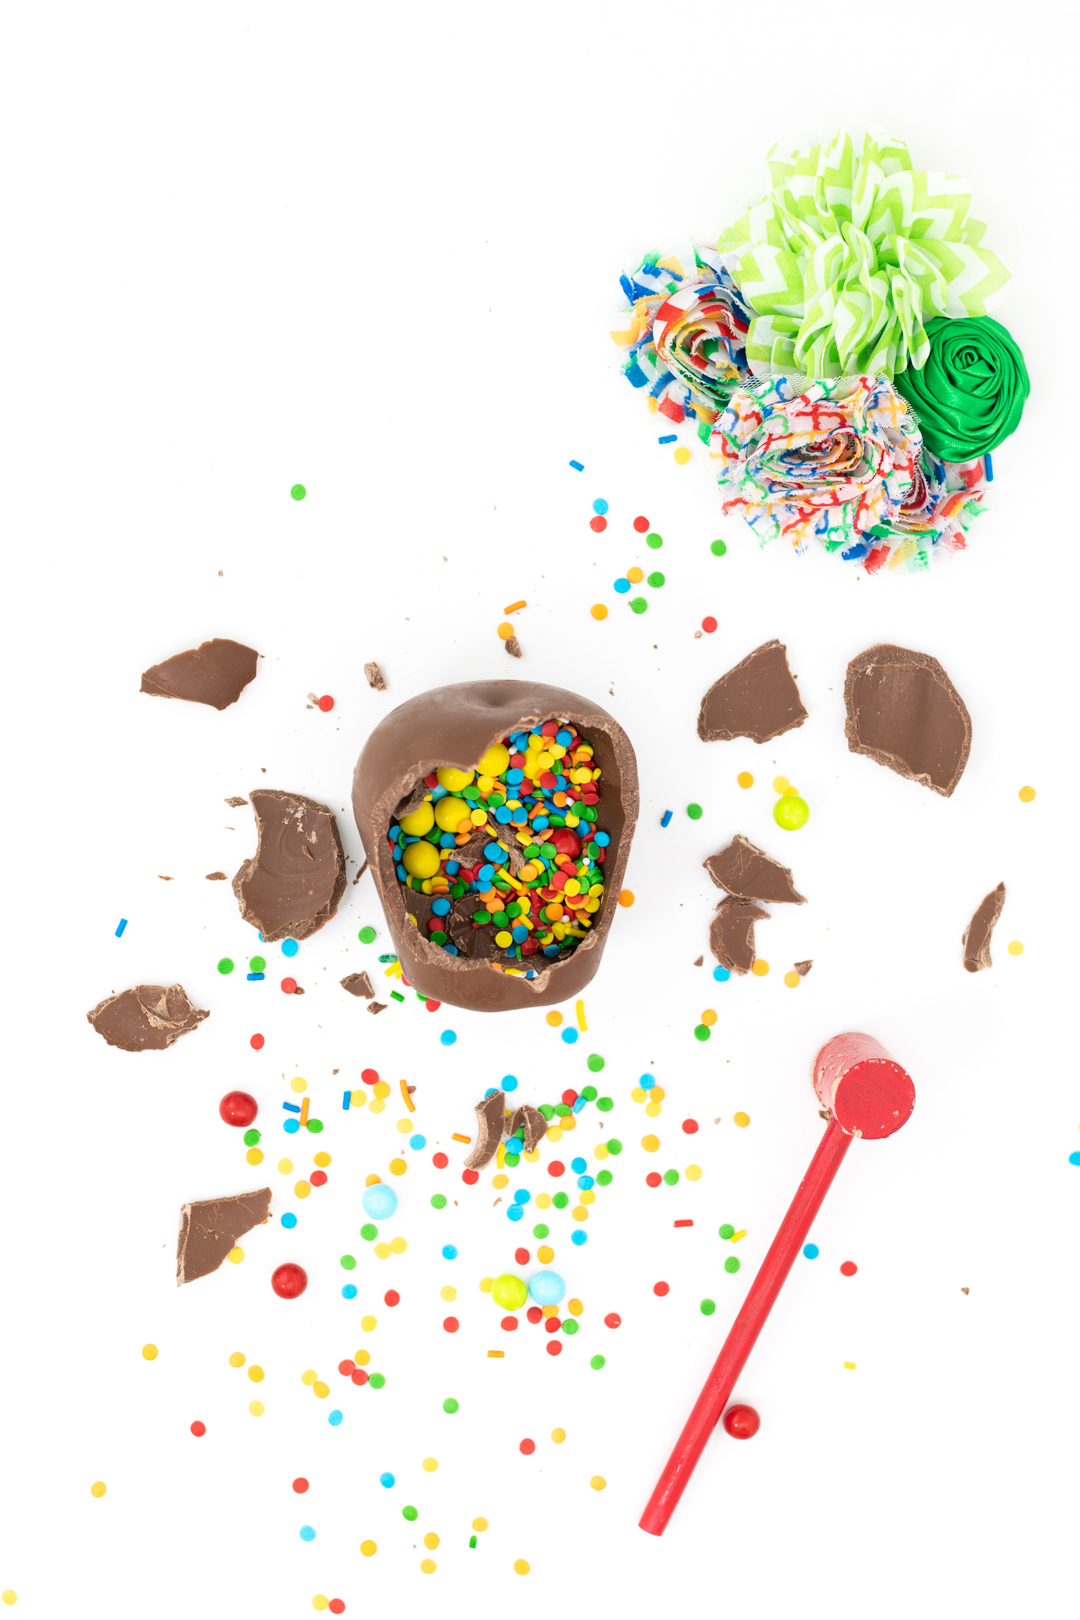 smashed chocolate pinata apple with confetti sprinkles and small candies all over